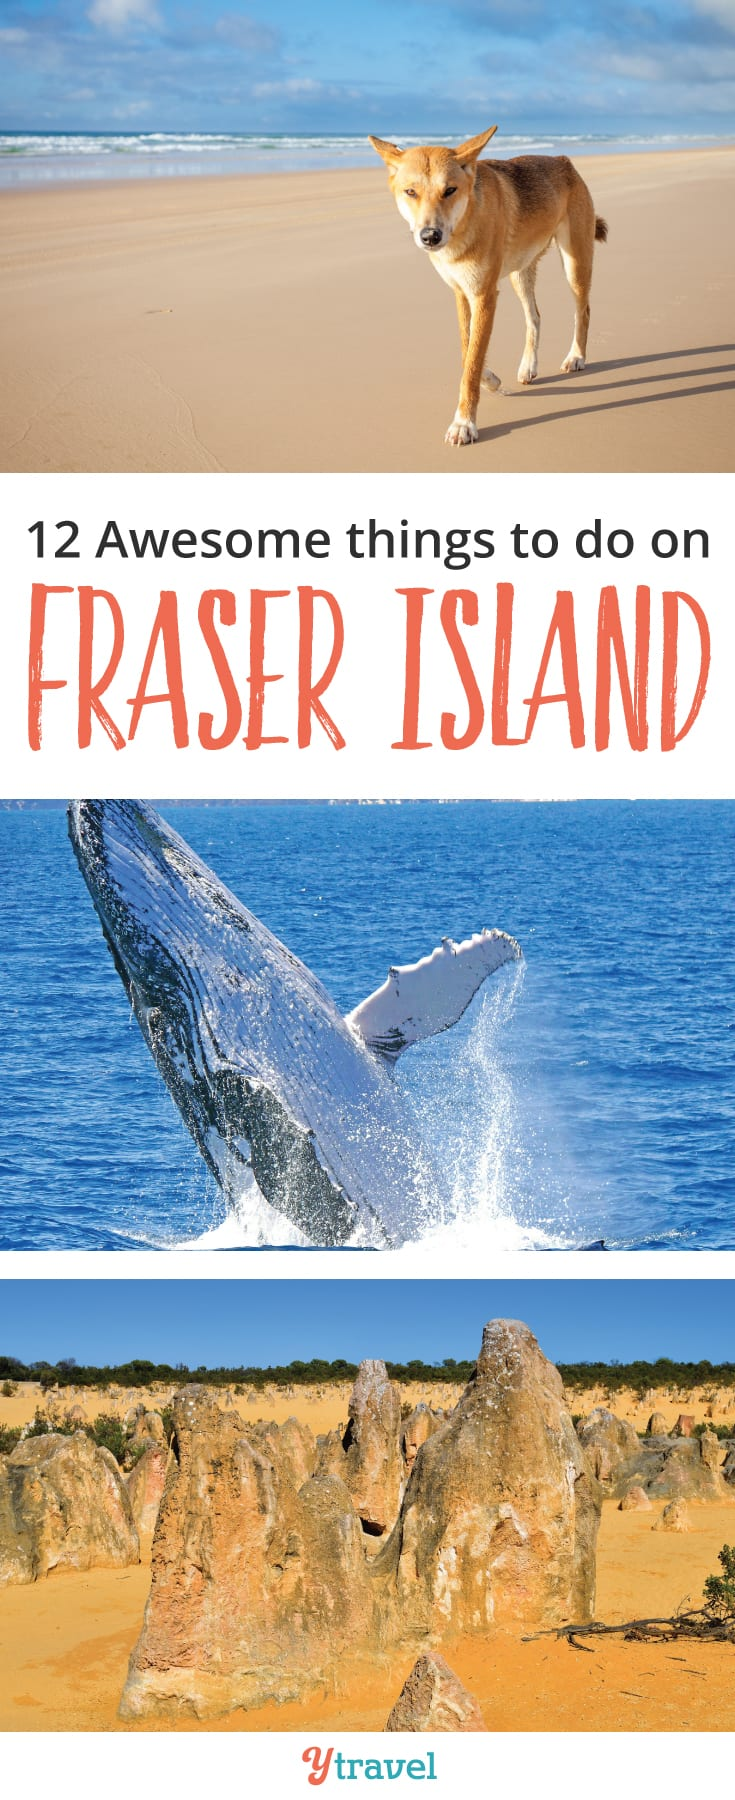 Things to do on Fraser Island: Fraser Island is the largest sand island in the world and one of the most beautiful to explore in Queensland, Australia. Check out the post for some epic adventures to have on Fraser Island including beach driving, whale watching and dingo watching.